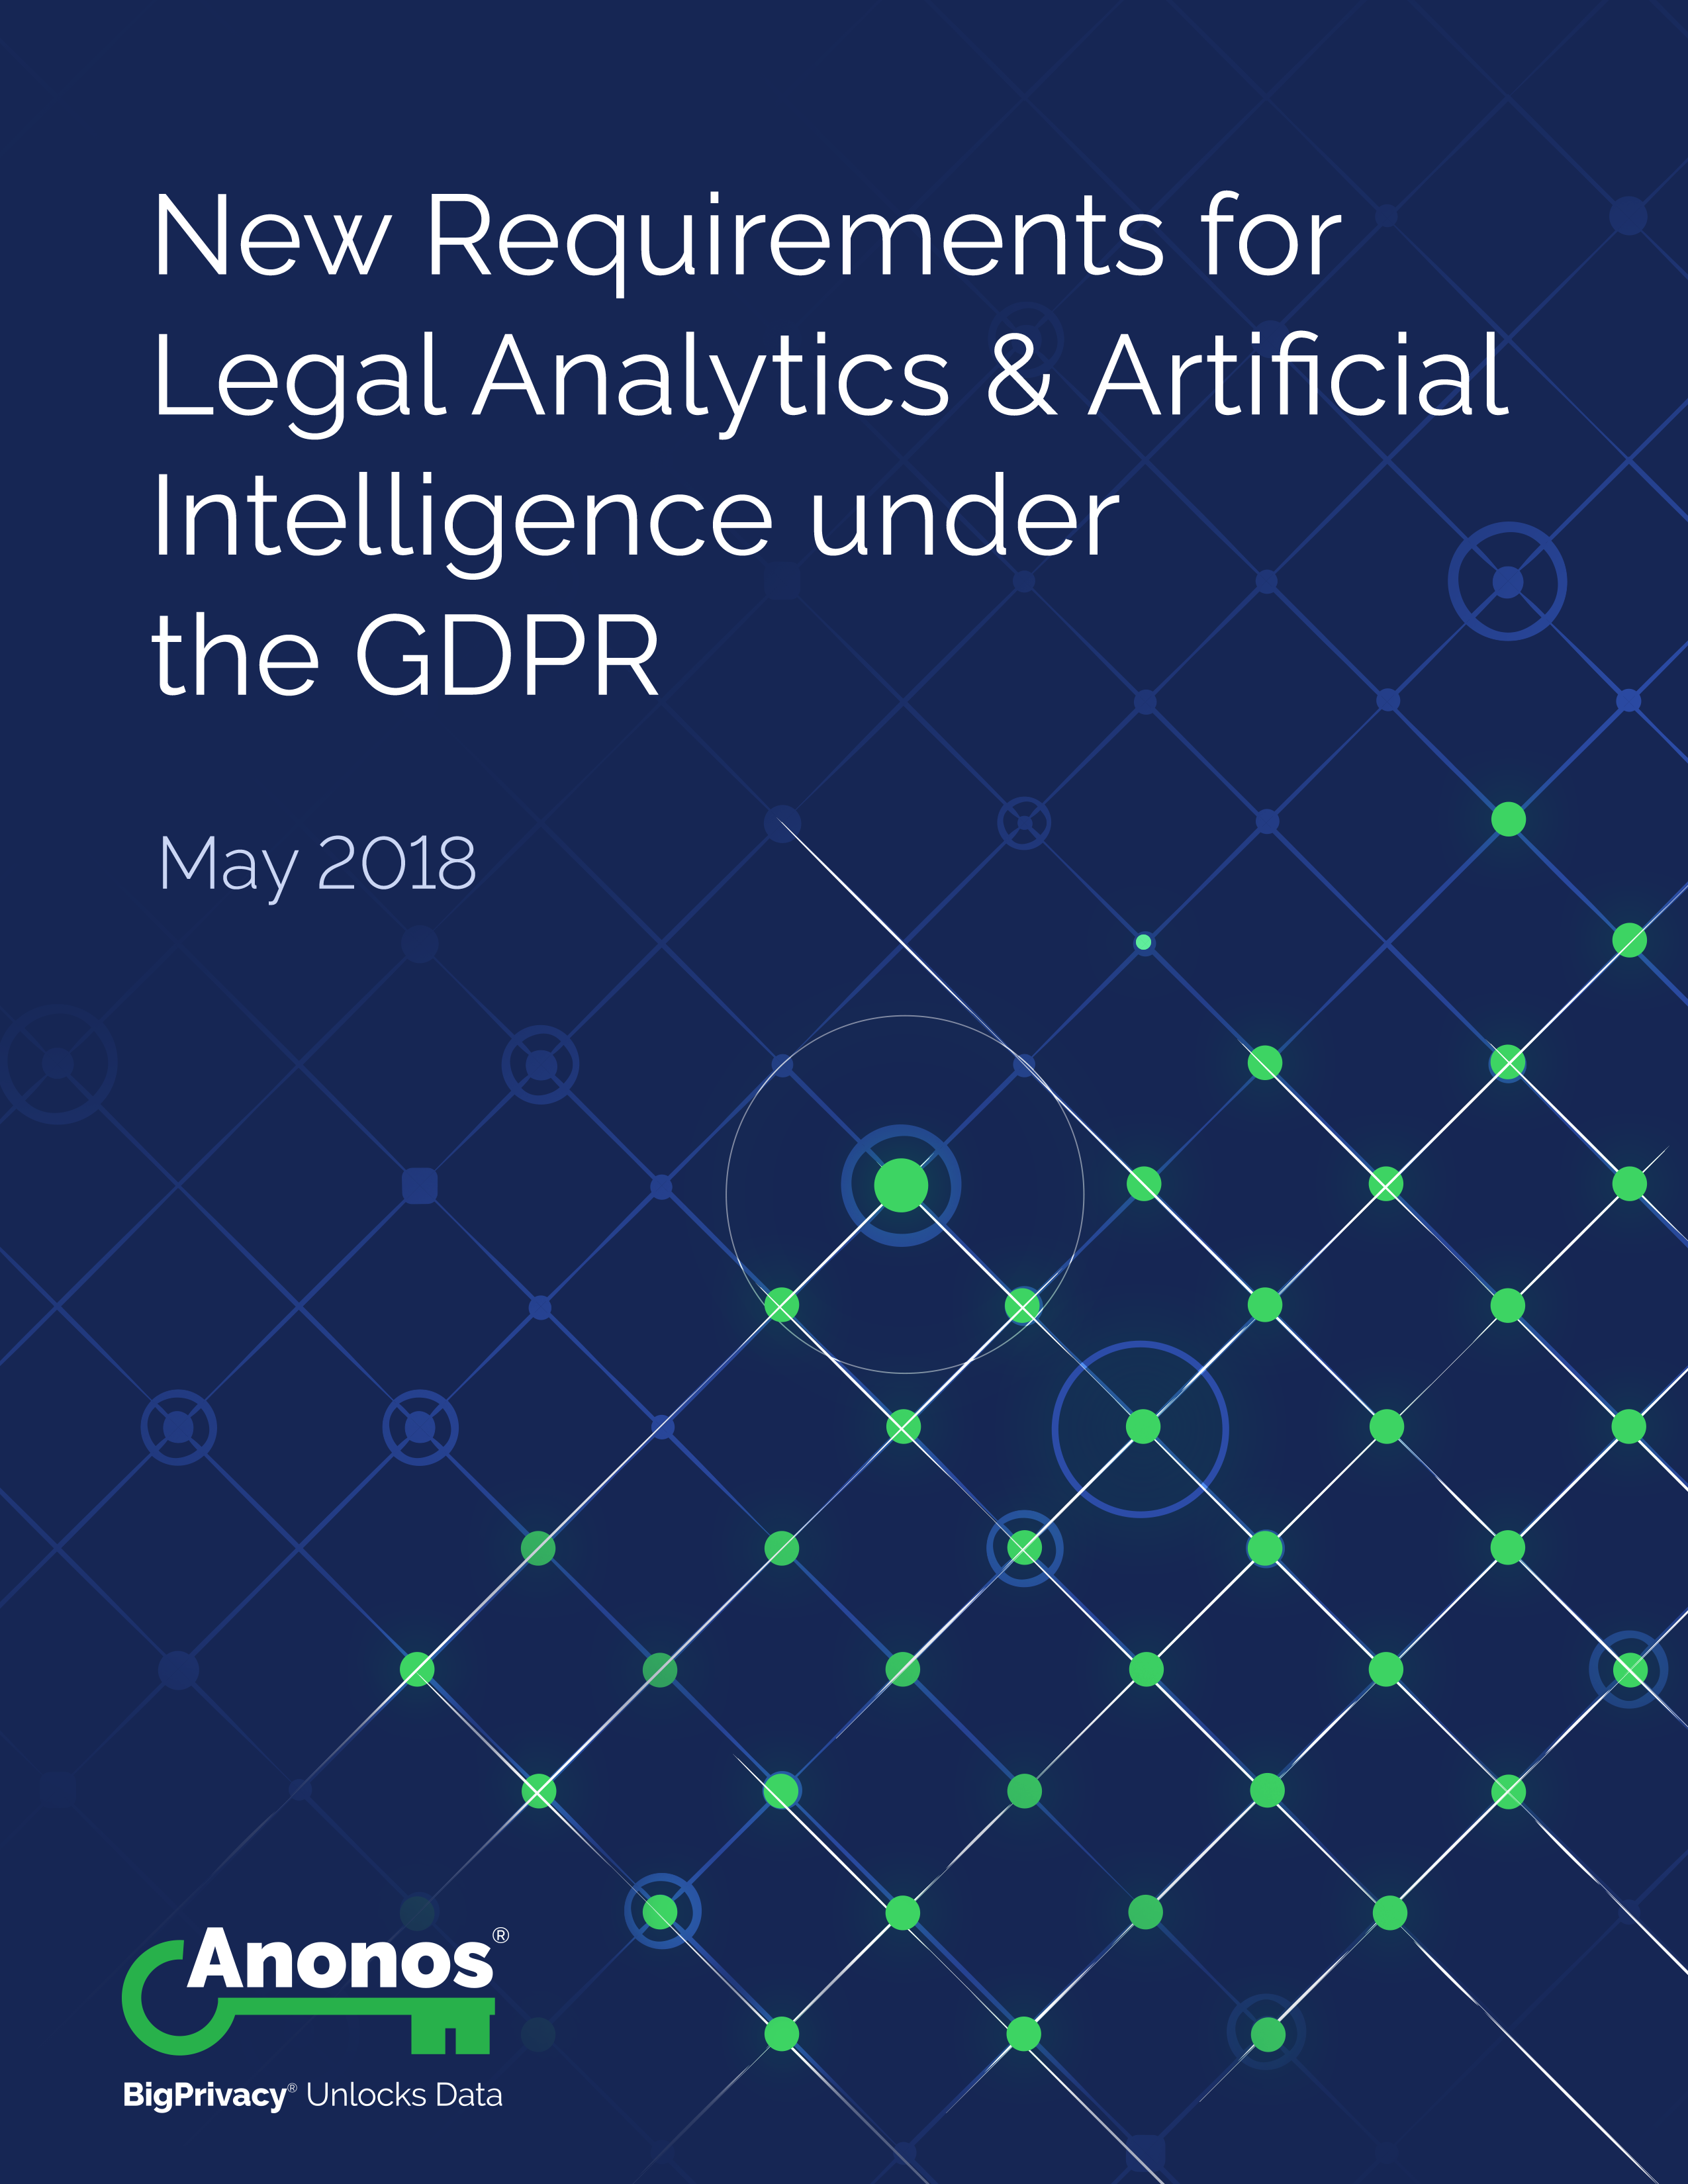 Requirements_for_GDPR_Legal_Analytics_&_AI_Anonos_BigPrivacy_Tumbnail